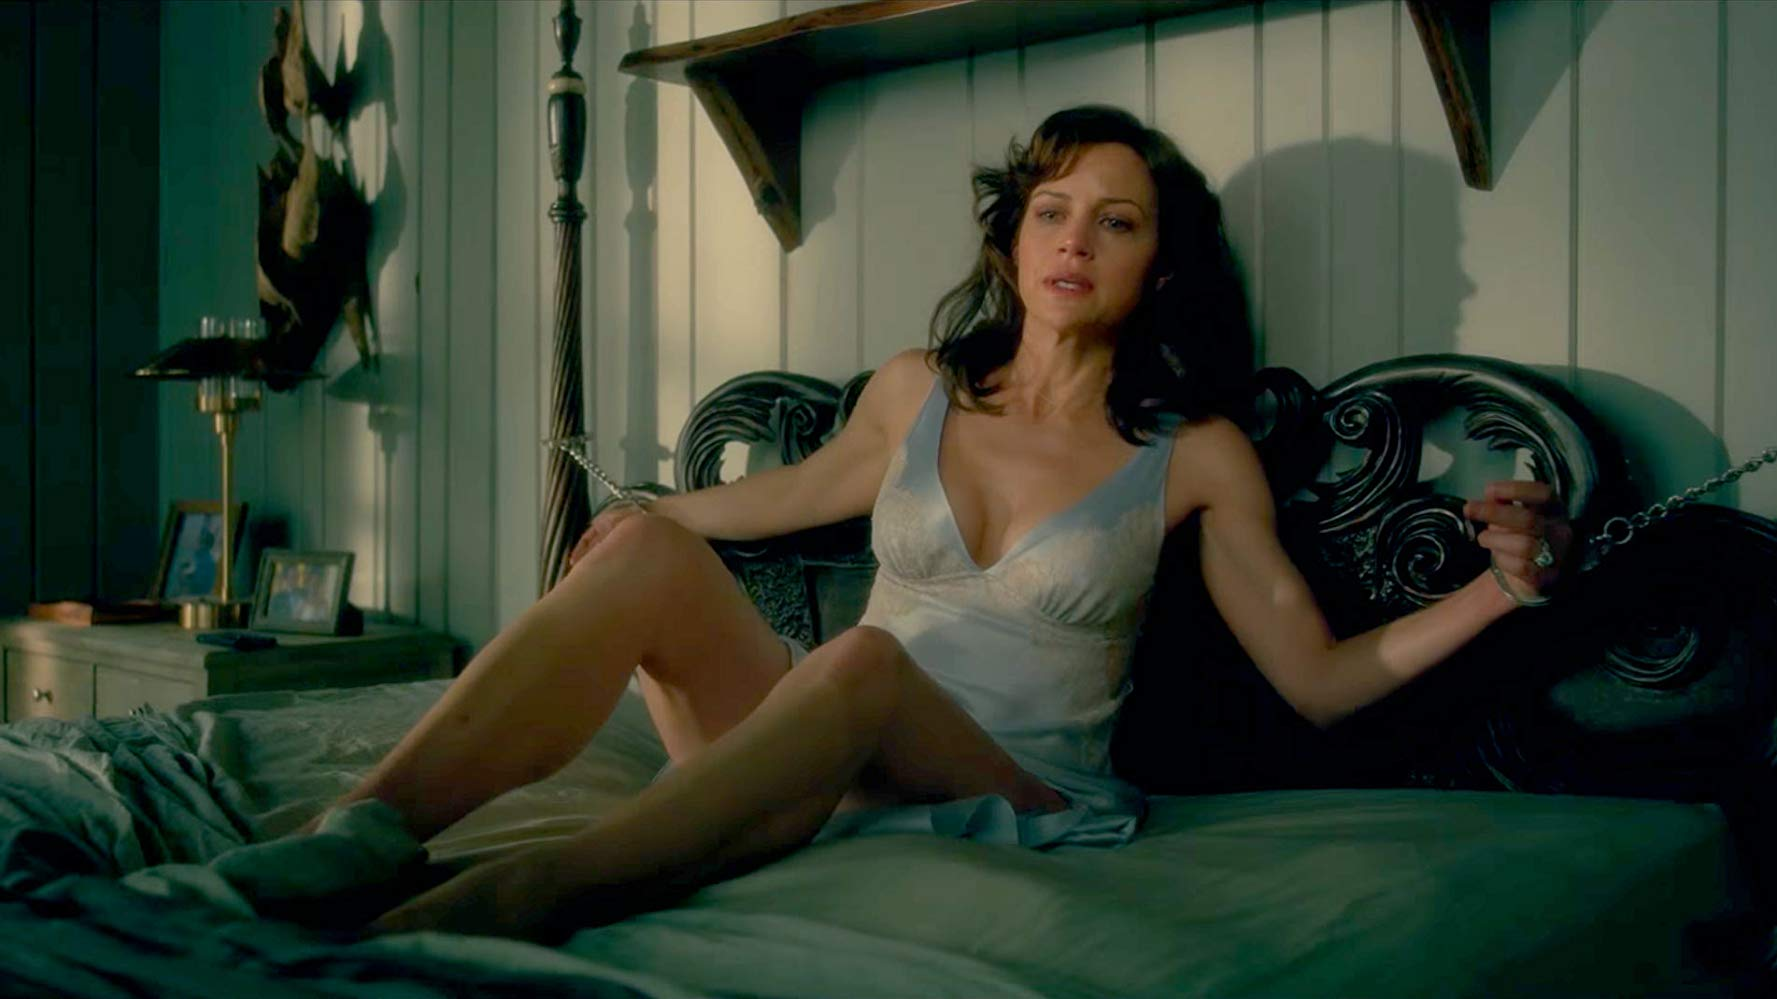 Jessie (Carla Gugino) left handcuffed to the bed in Gerald's Game (2017)